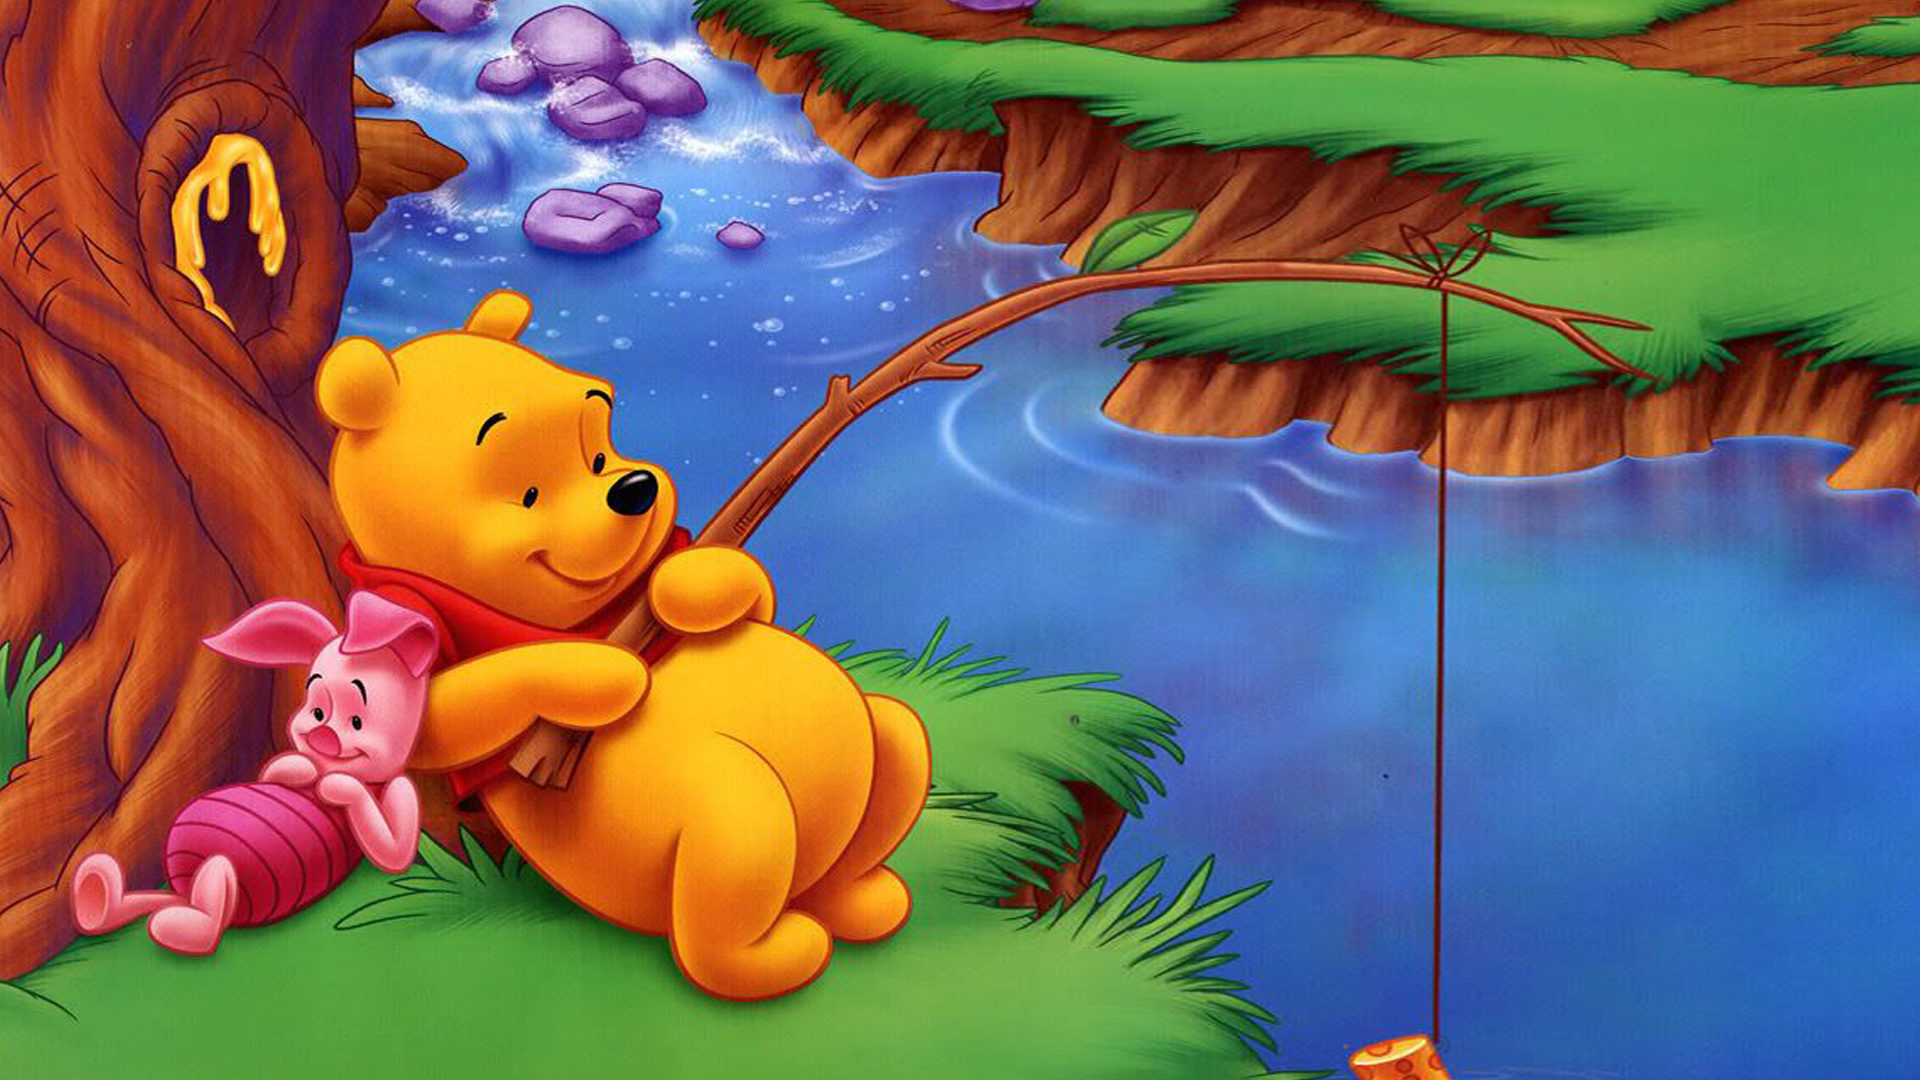 Piglet Wallpaper Iphone Winnie The Pooh And Piglet River Fishing Of Fish Cartoon